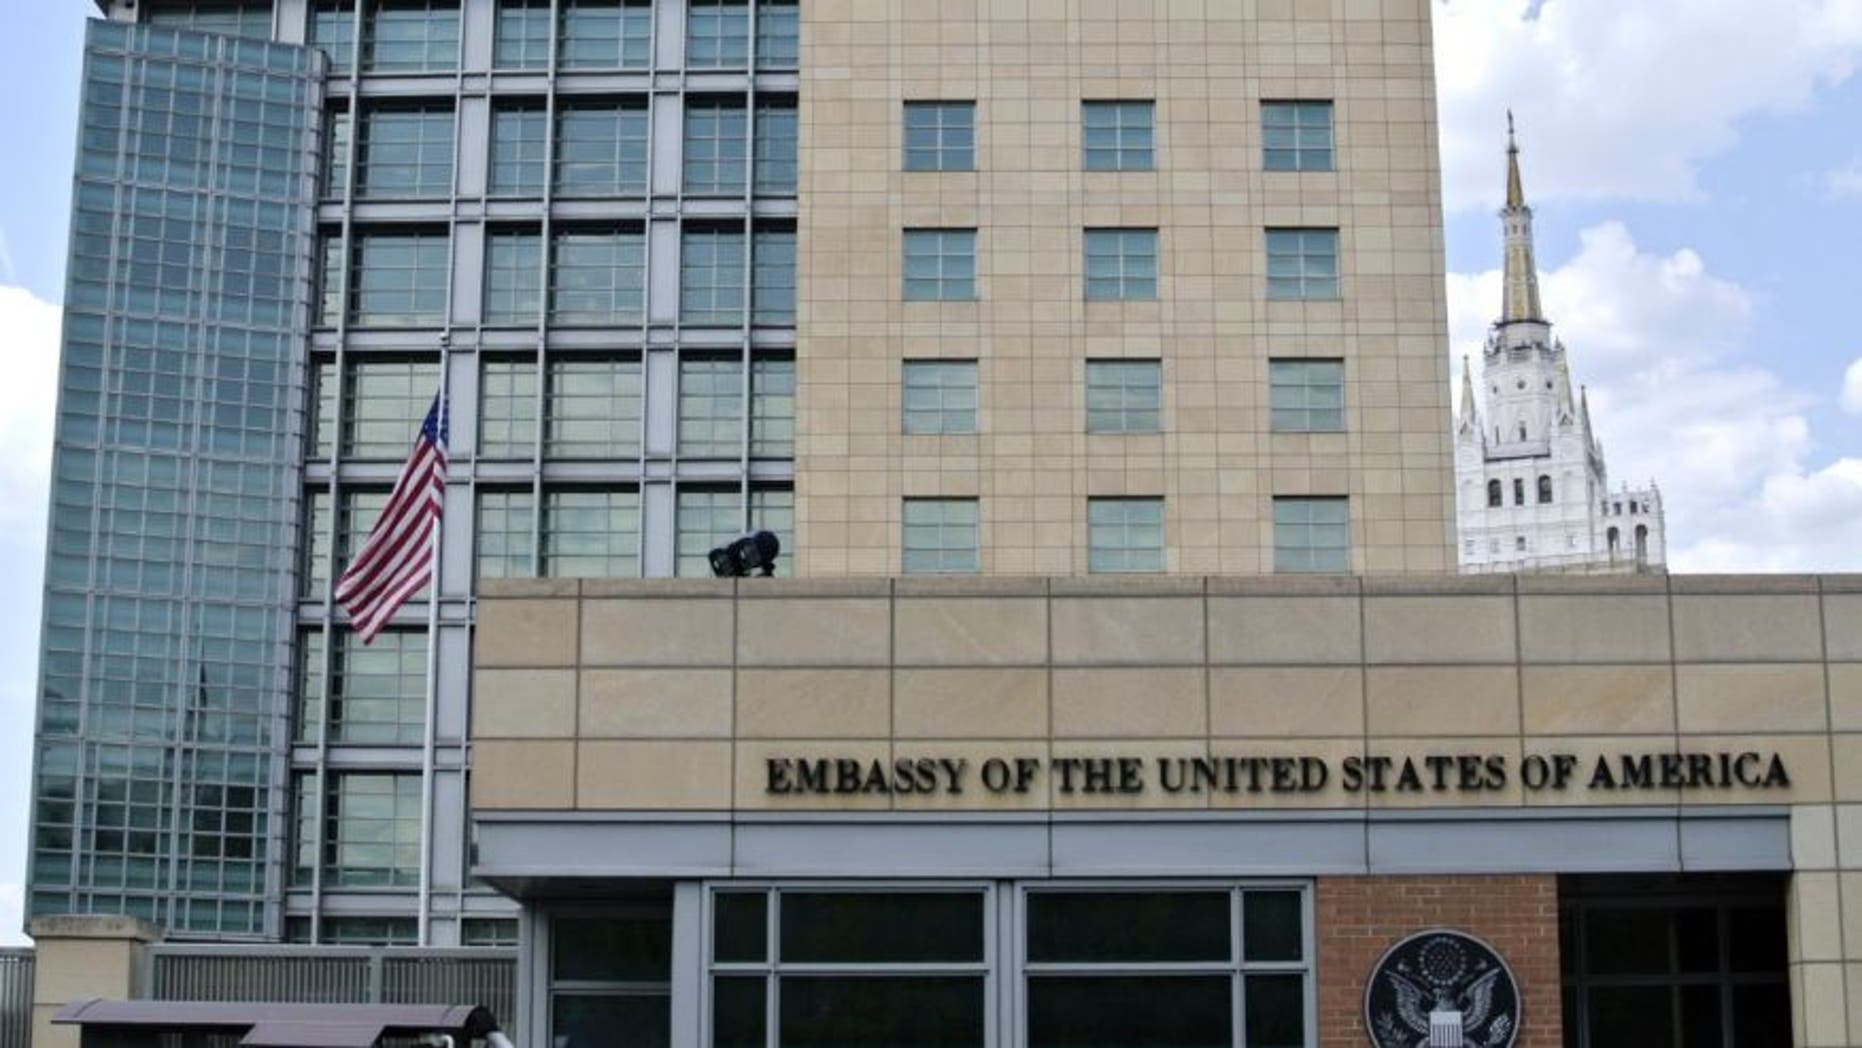 The U.S. Embassy in downtown Moscow. (AP Photo/Ivan Sekretarev)